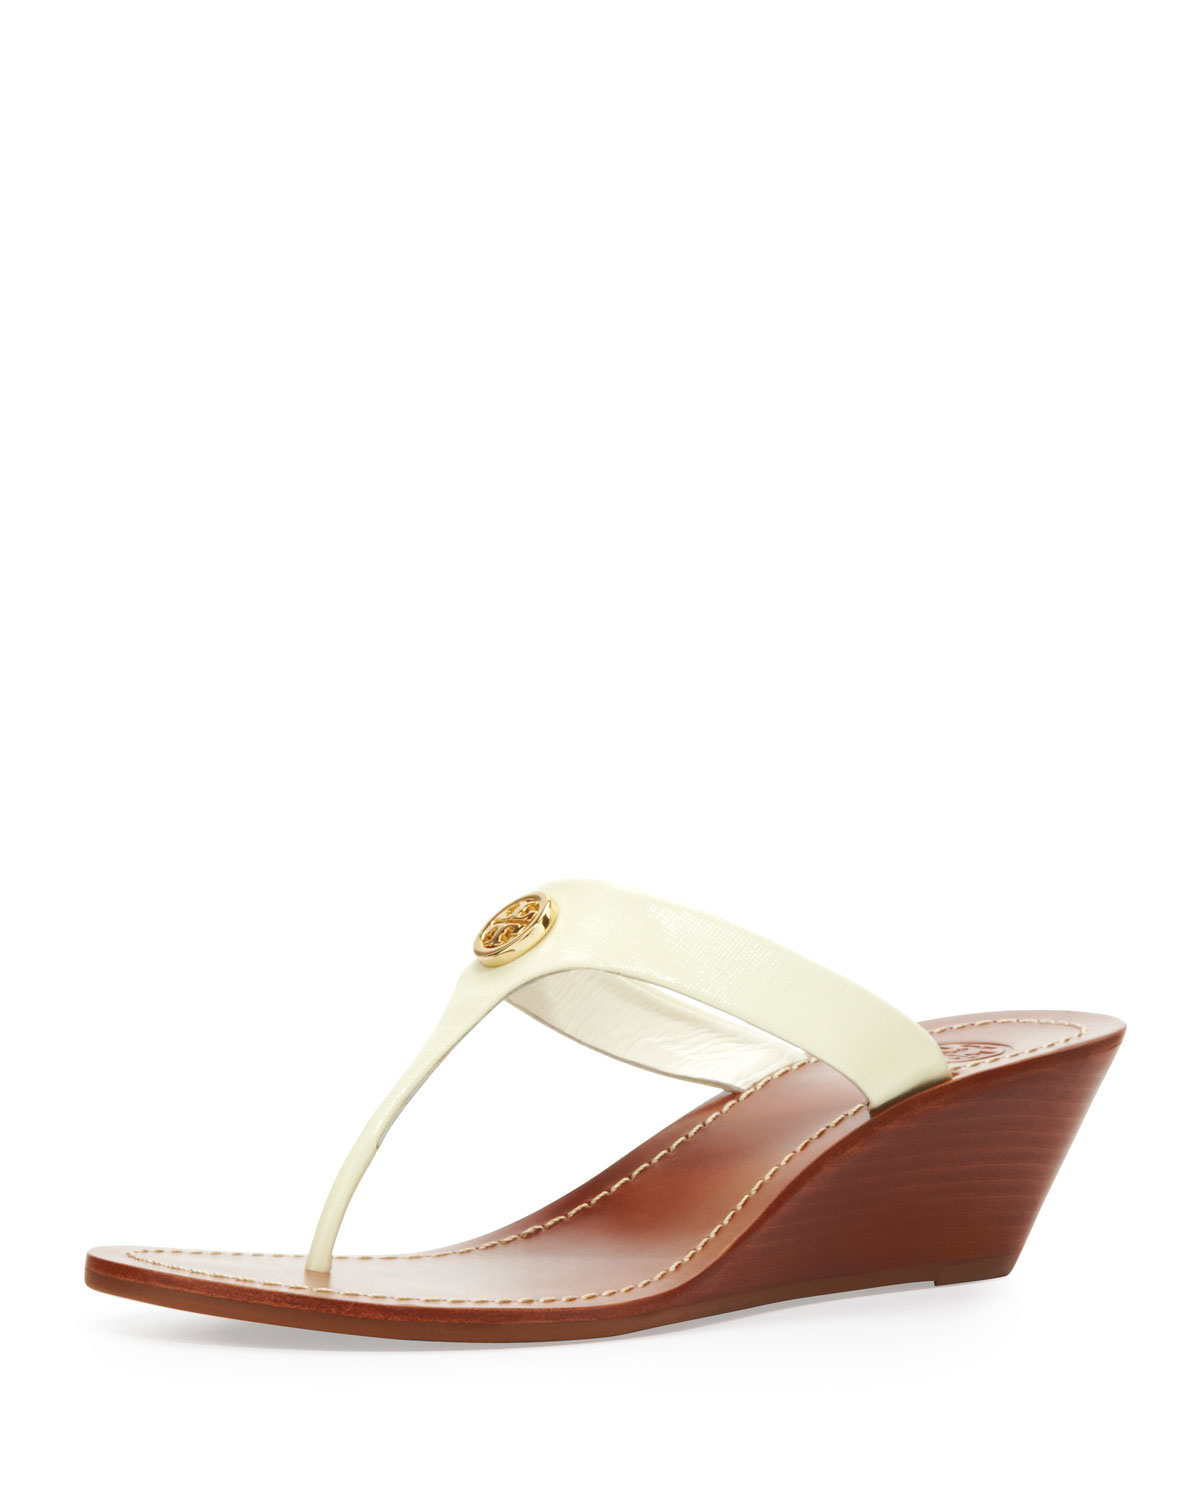 602f7931bbd Lyst - Tory Burch Cameron Patent Thong Wedge Sandal Ivory in White